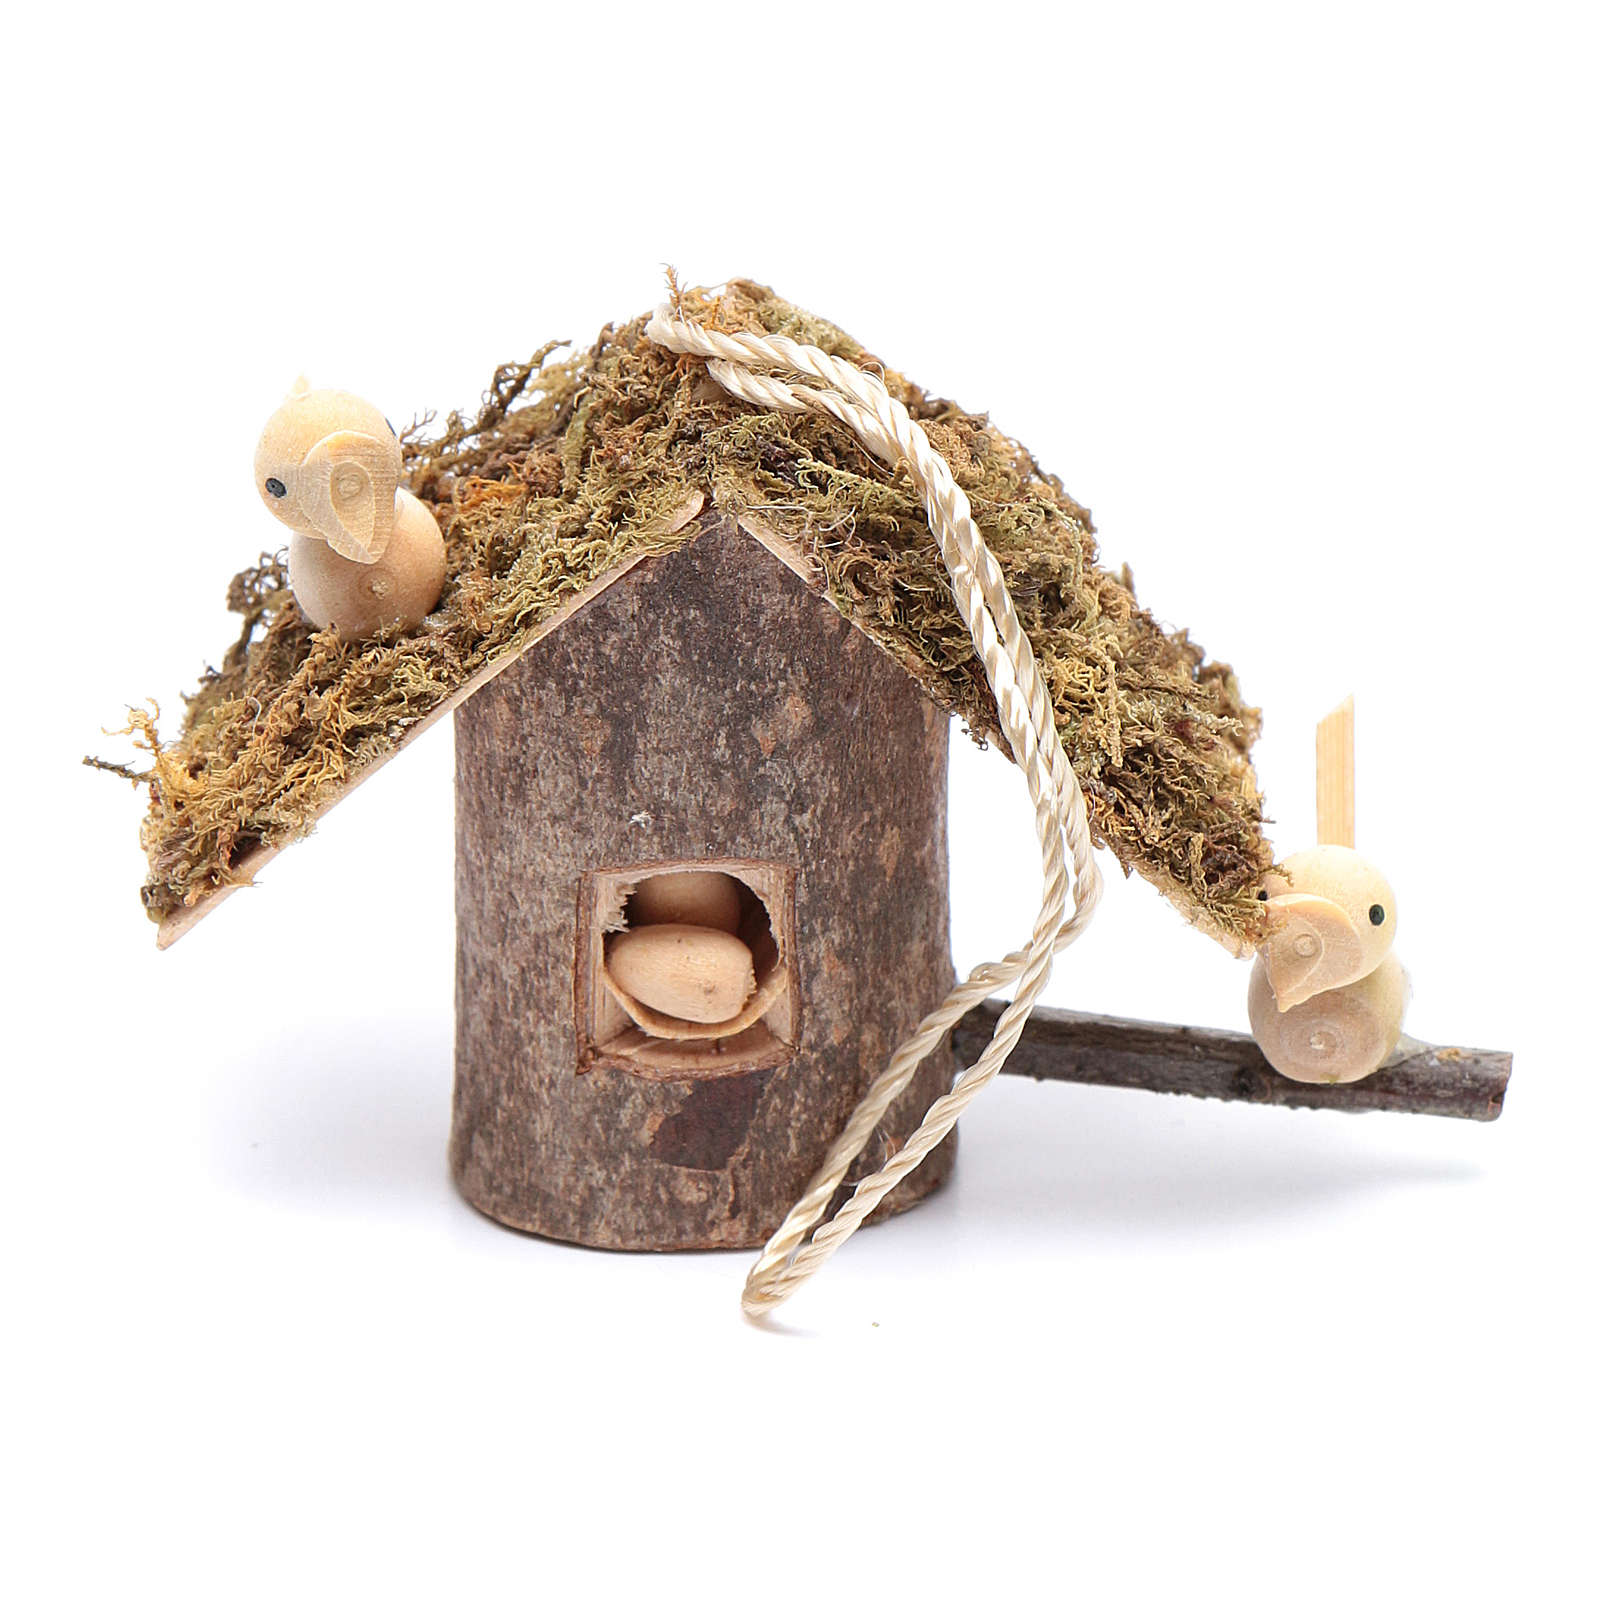 Birdhouse for nativity scene 3